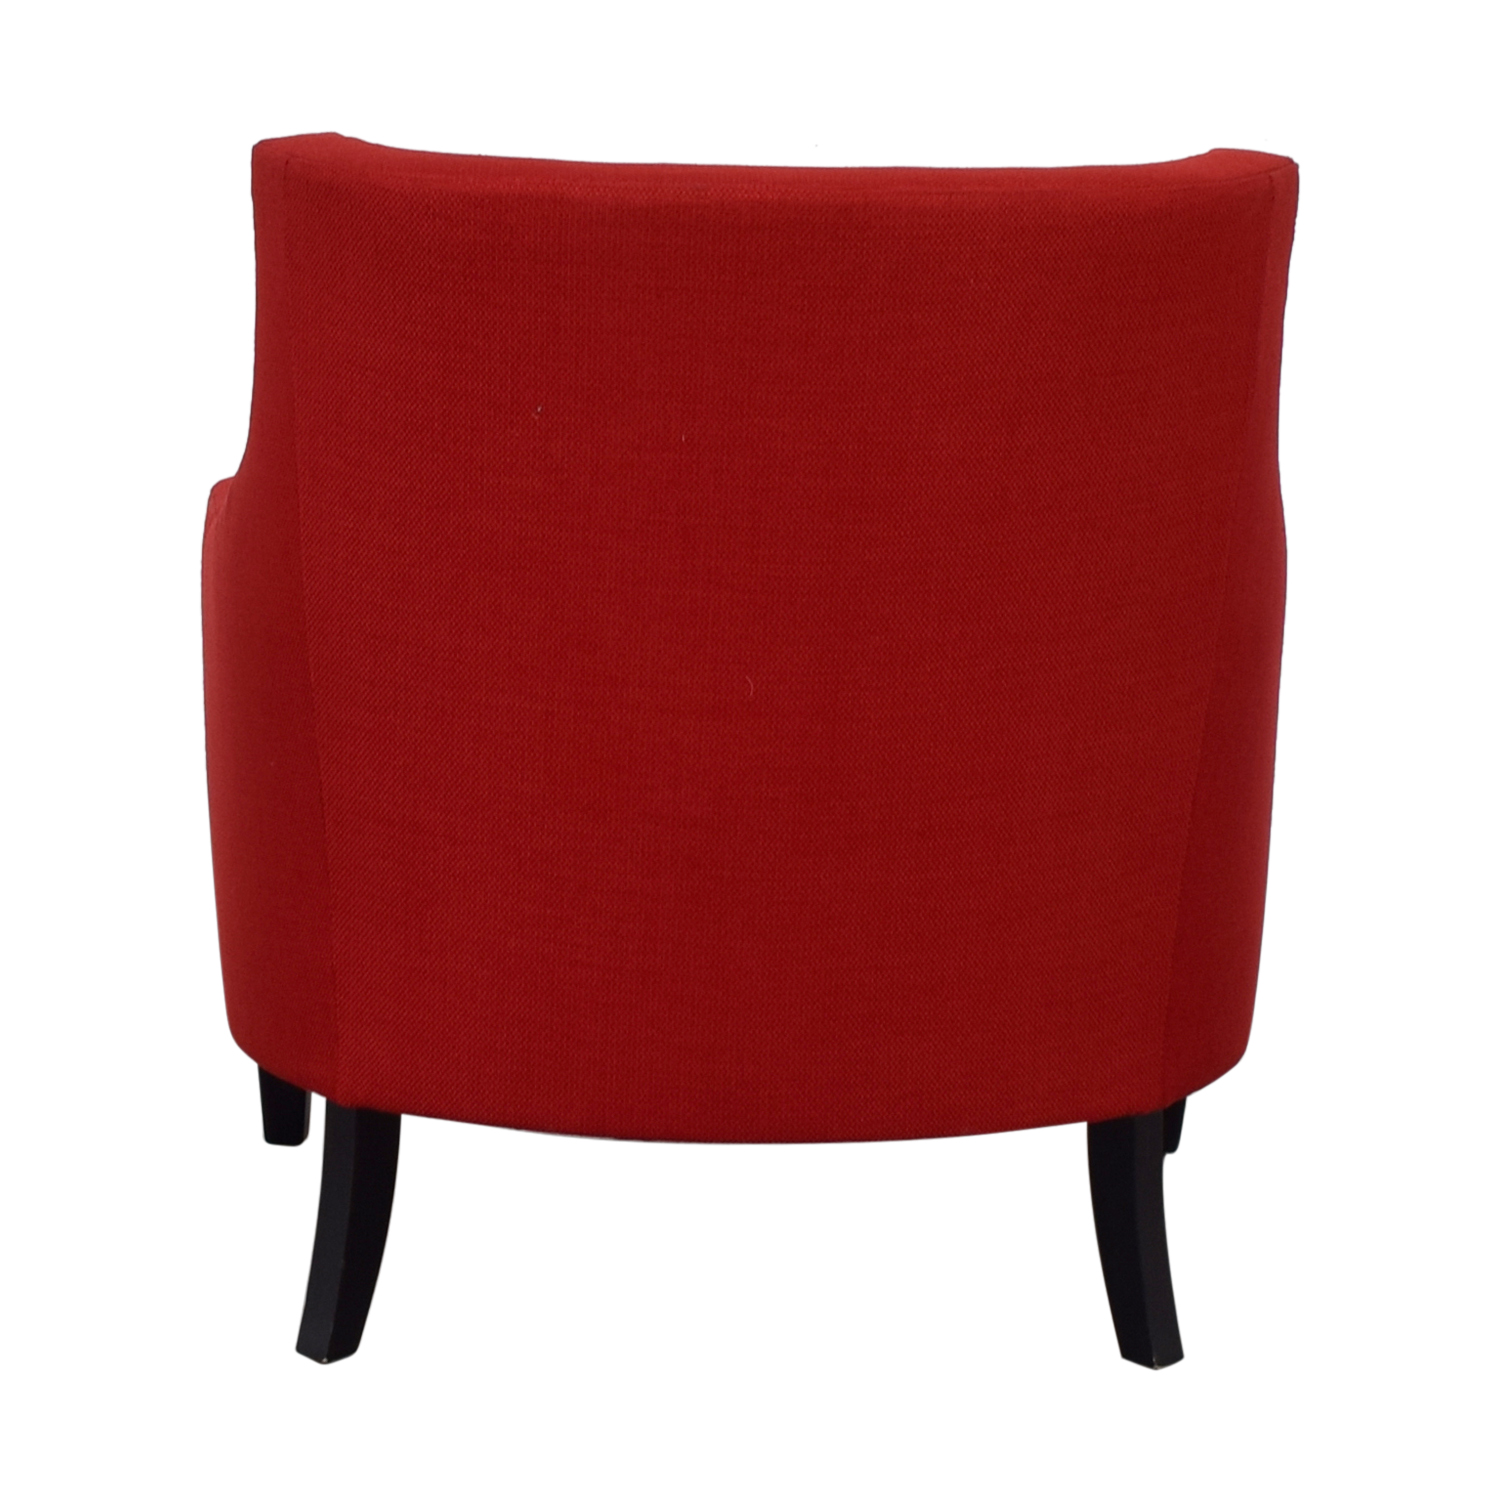 Crate & Barrel Crate & Barrel Red Fabric Accent Chair discount